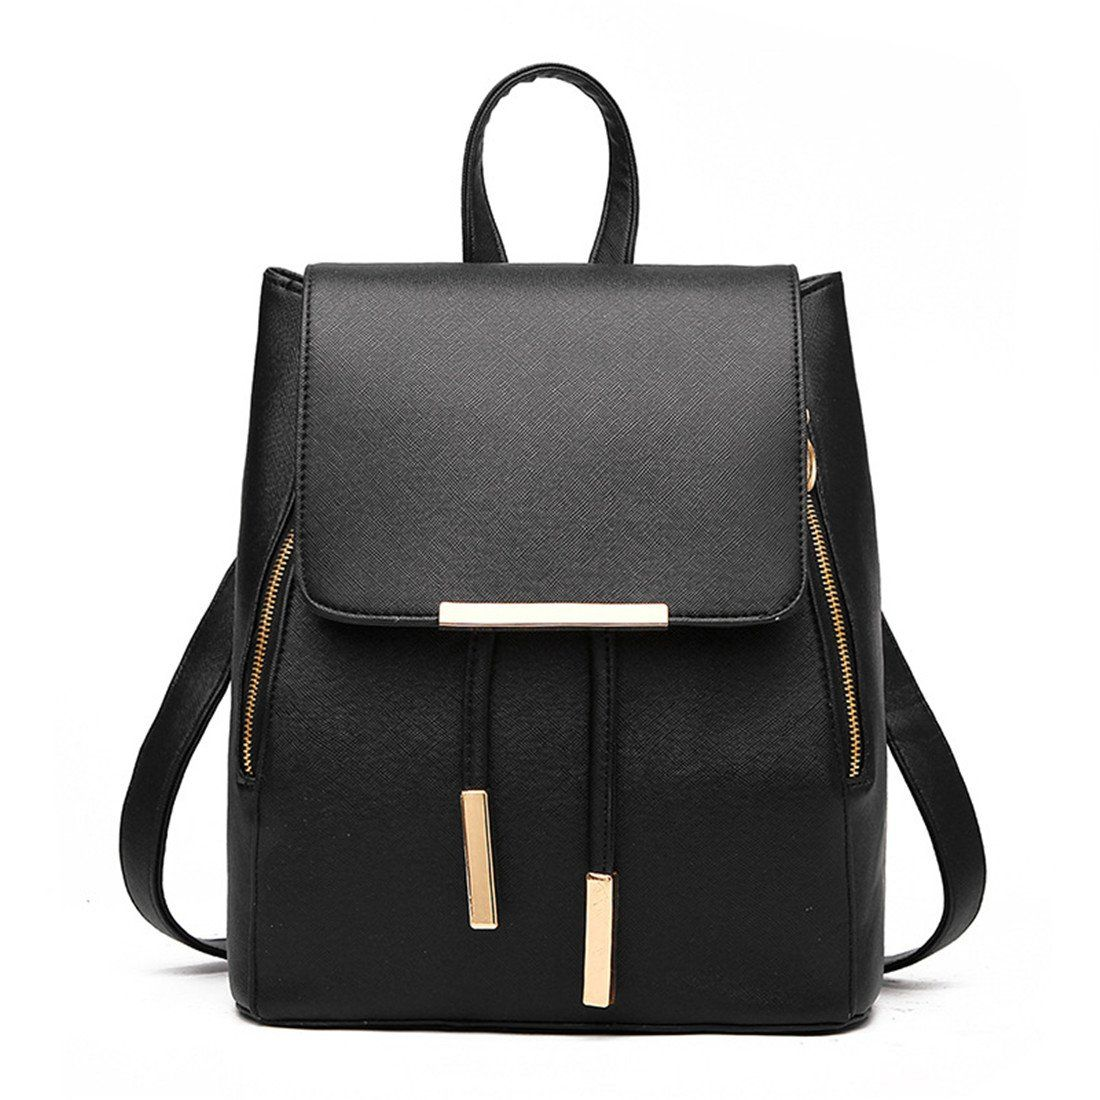 d7964d938fbc Women Girls Ladies Backpack Fashion Shoulder Bag Rucksack PU Leather Travel  bag (black)  Amazon.co.uk  Luggage